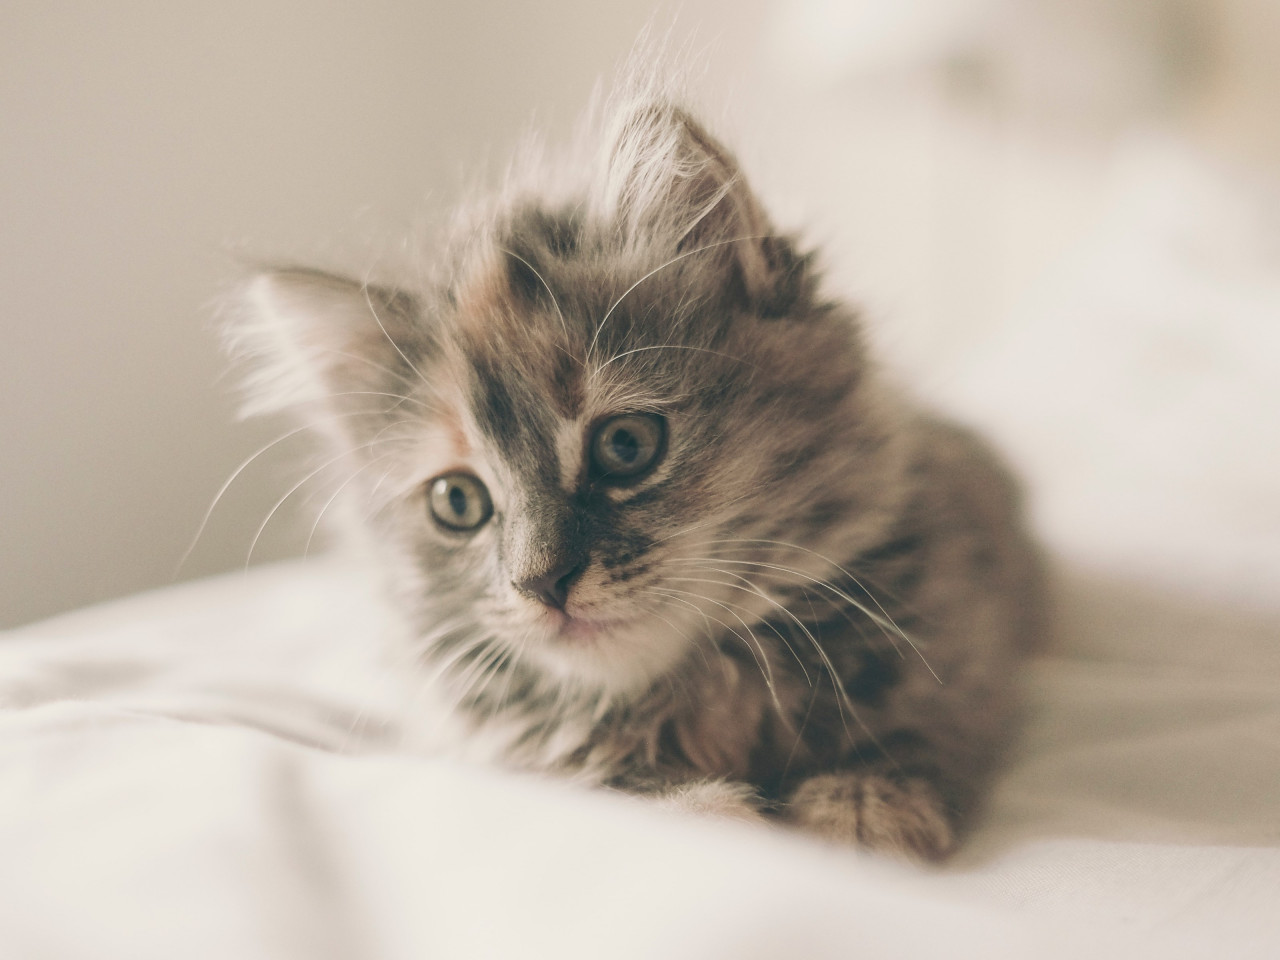 Fluffy kitten wallpaper 1280x960